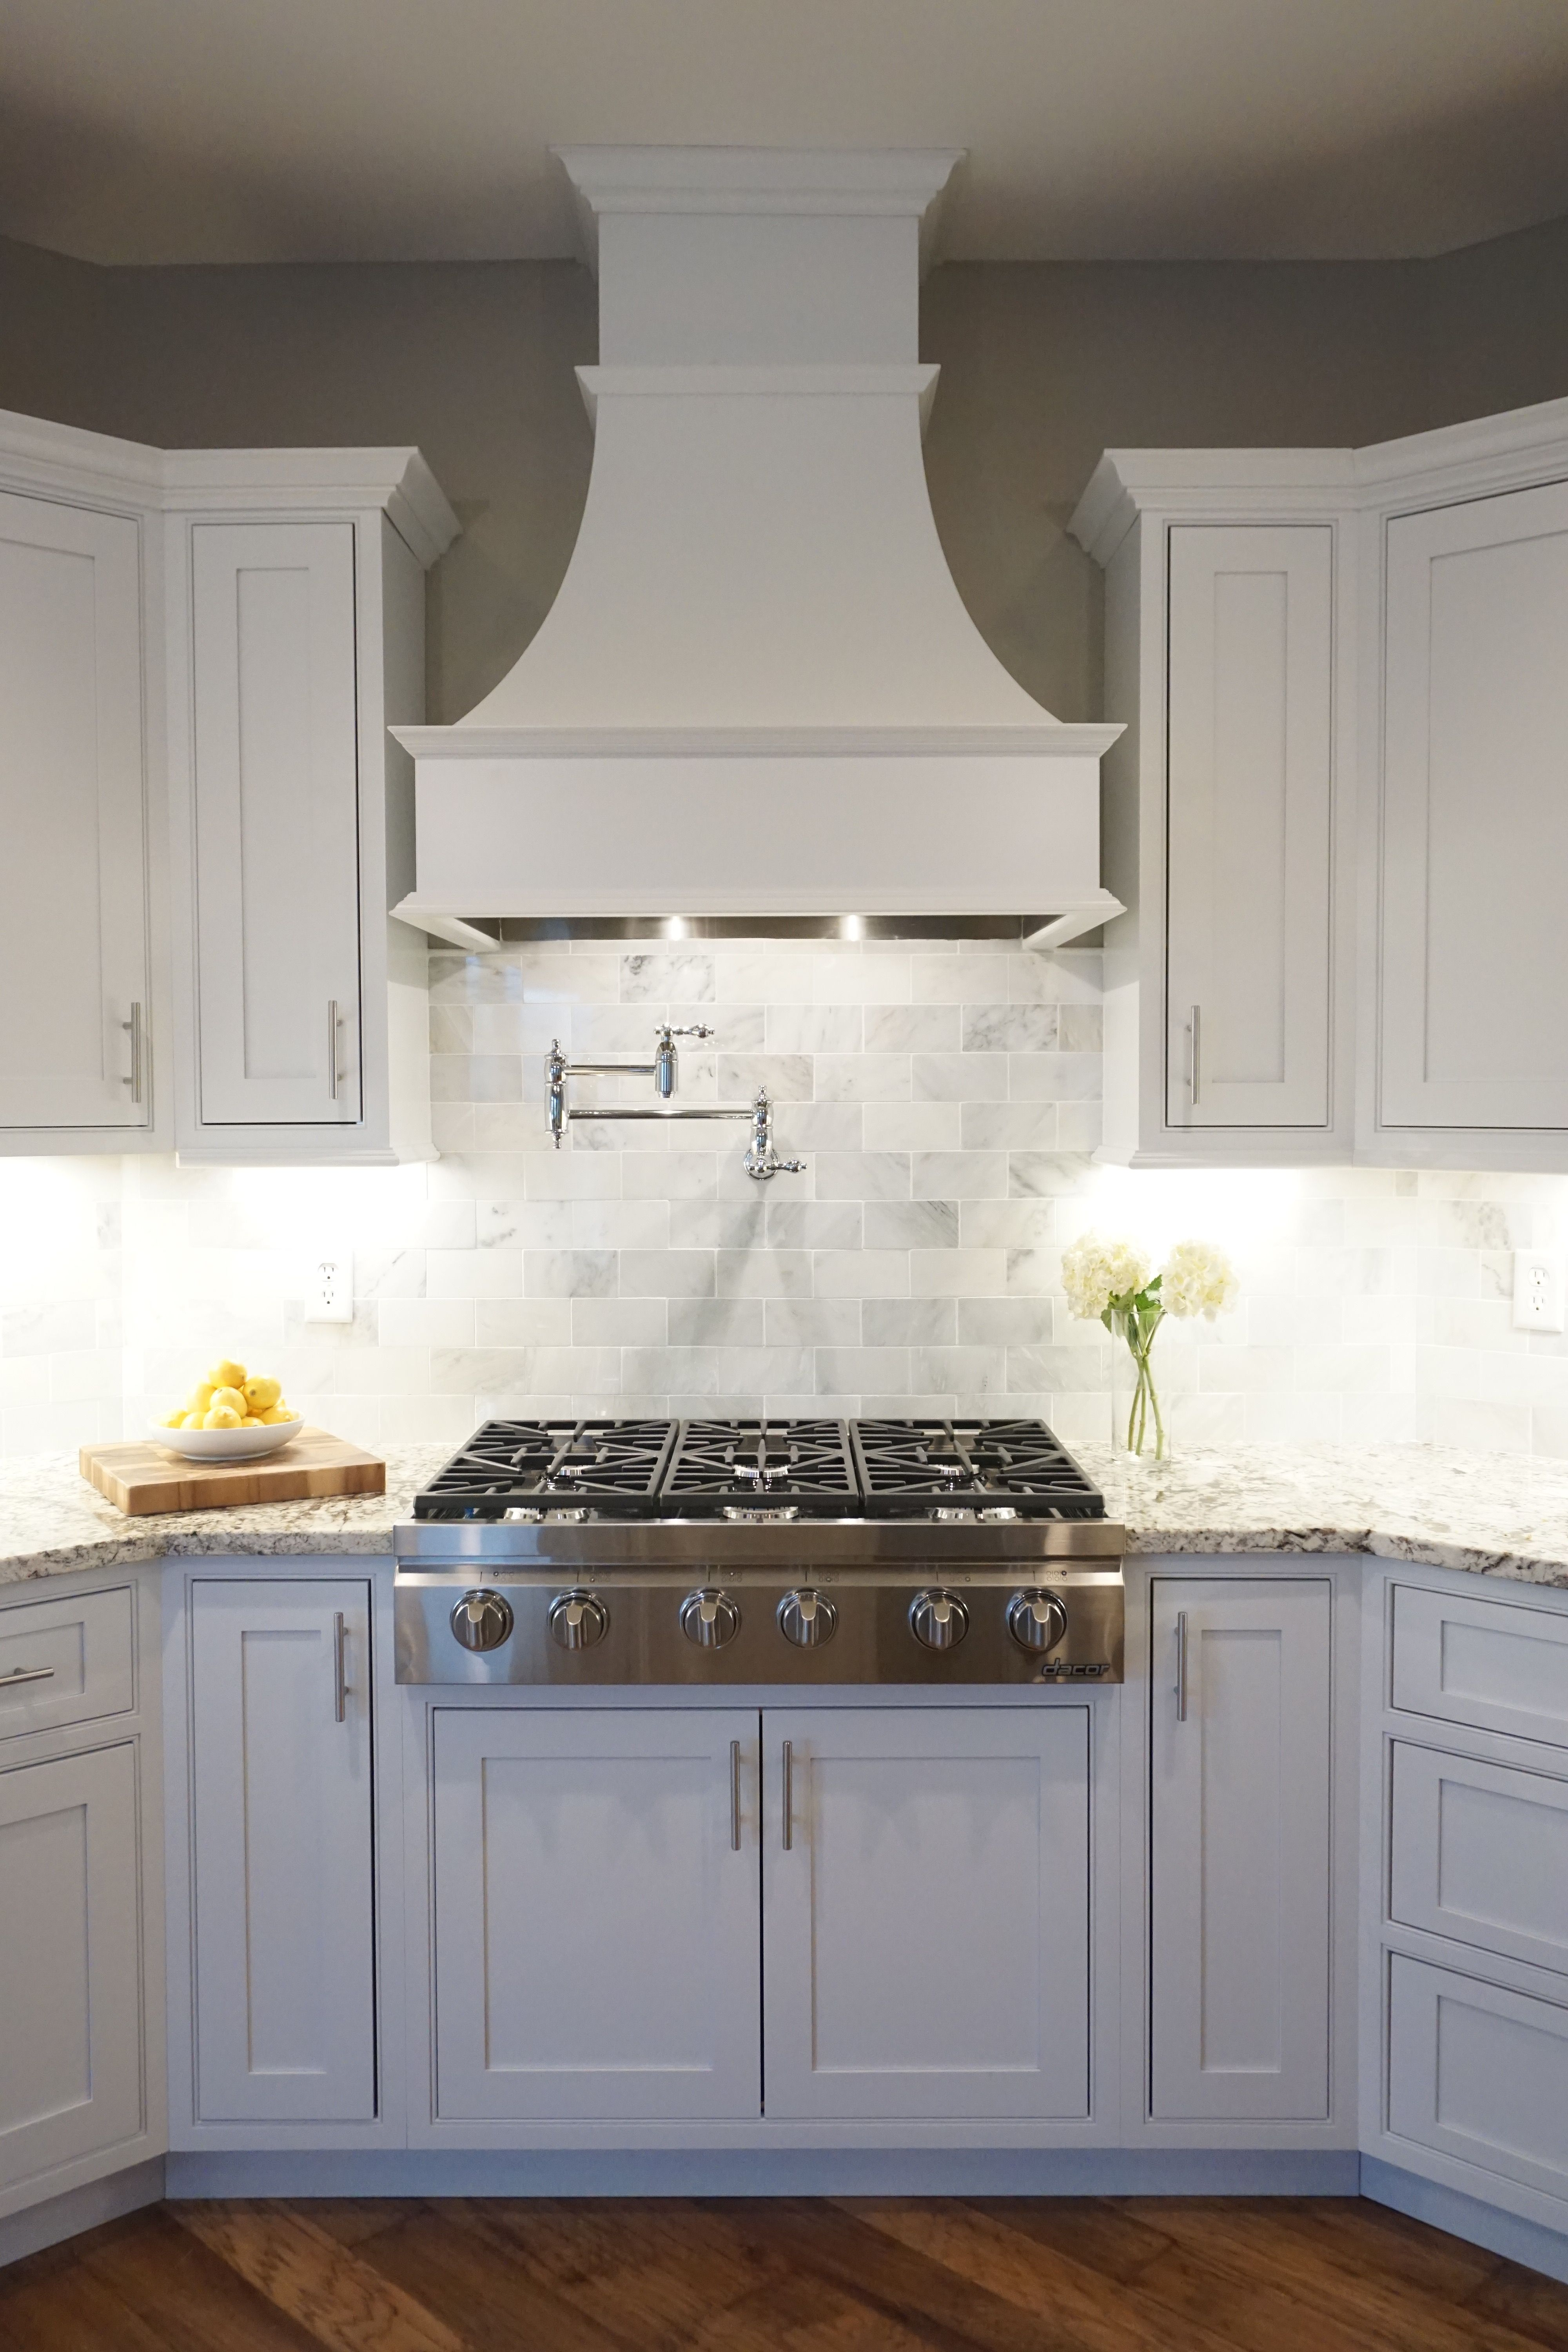 Kitchen Cabinet Range Hood Design White Cabinets Shaker Door Inset Cabinetry Decorative